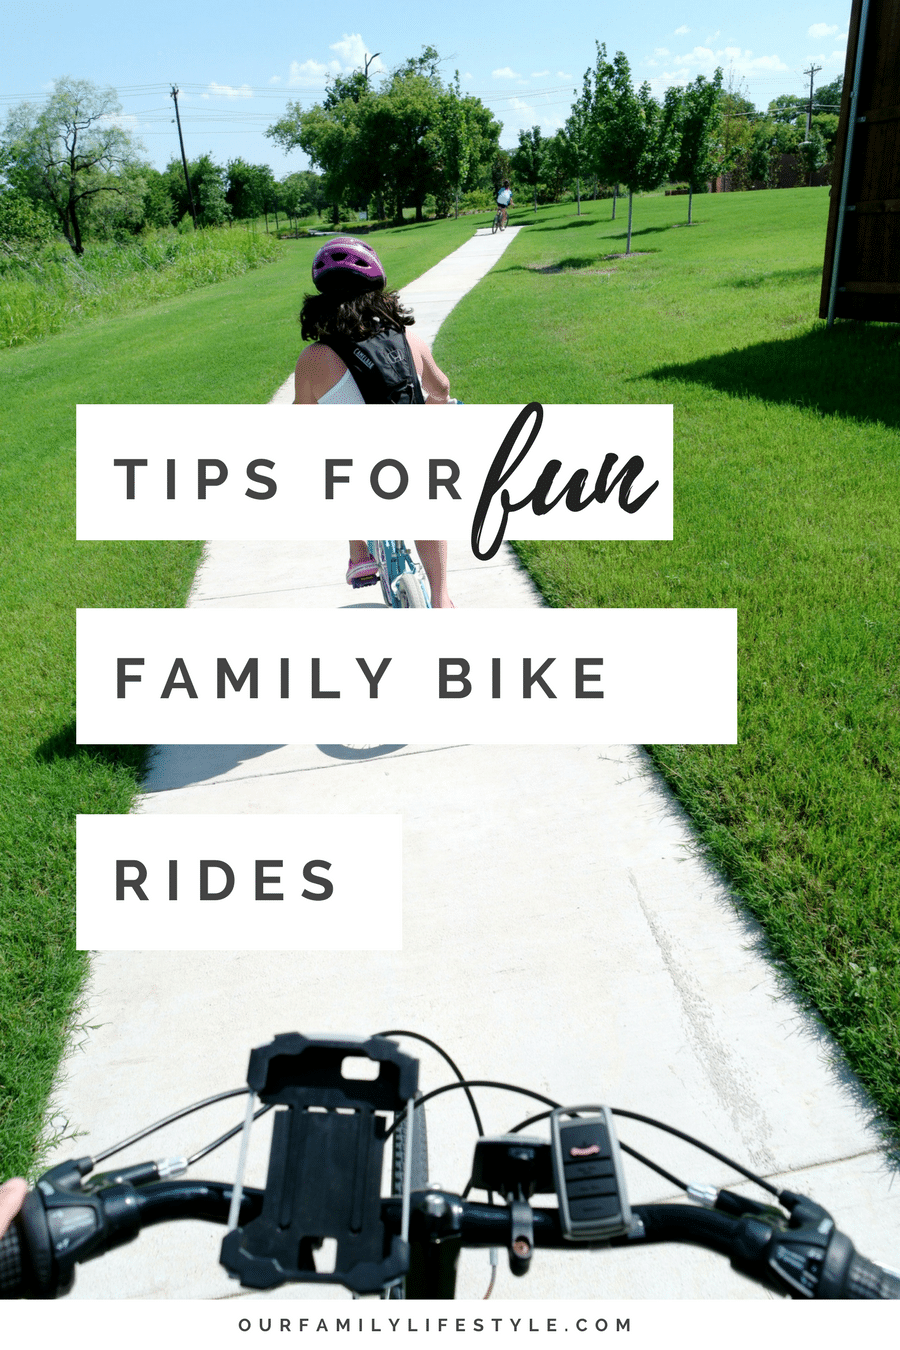 Tips for Fun Family Bike Rides